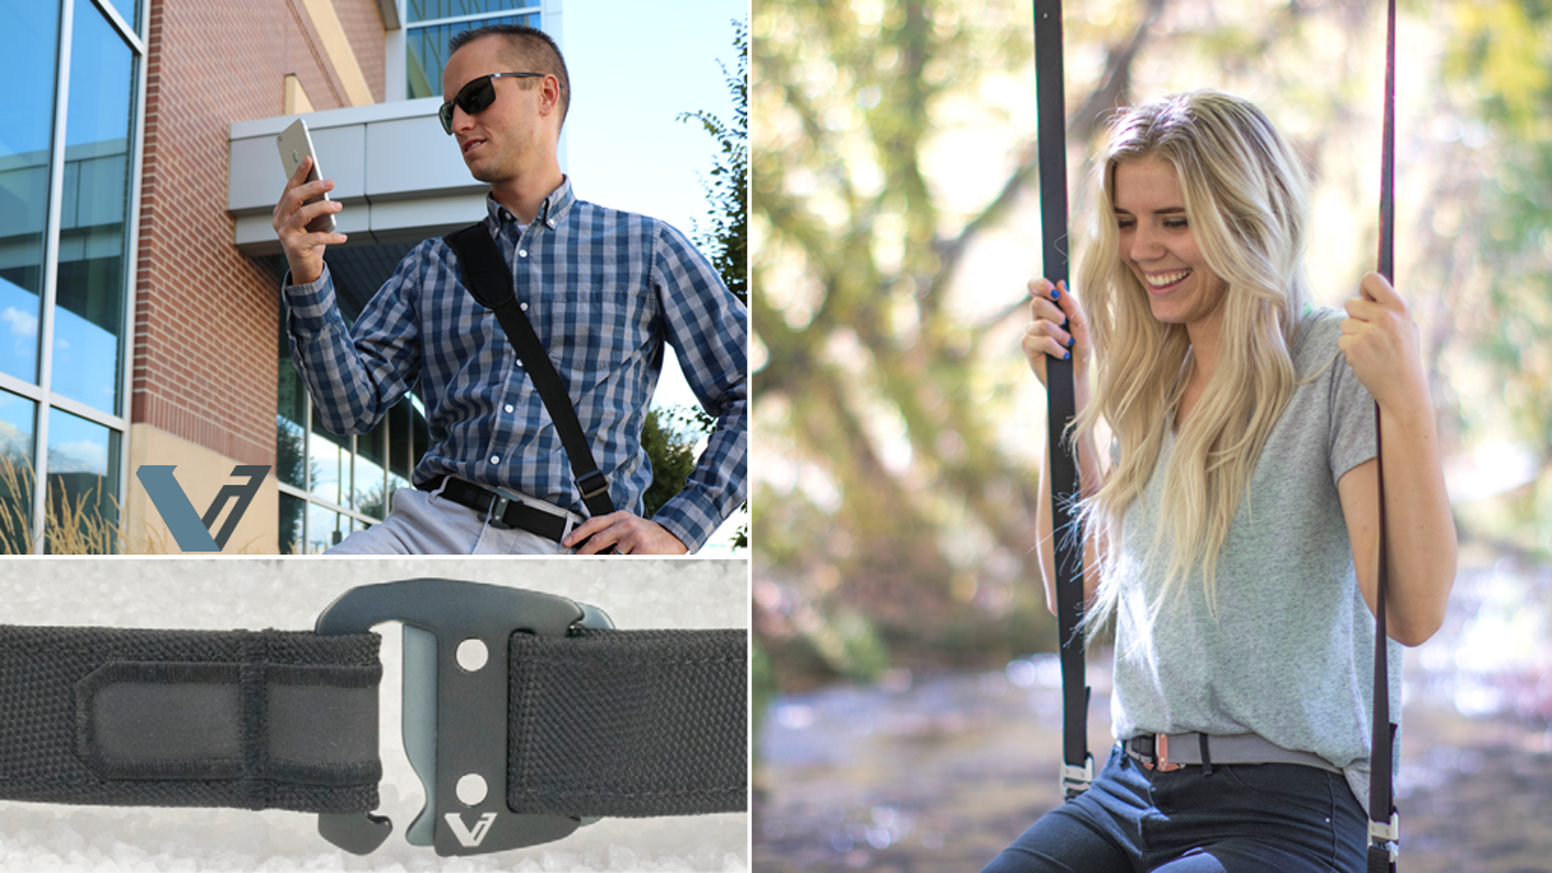 The Fastest on and off belt. Adjustable but Always adjusted. Casual but Classy. THE BELT ADJUSTED | Venturi Belt Co. #VenturiBeltCo